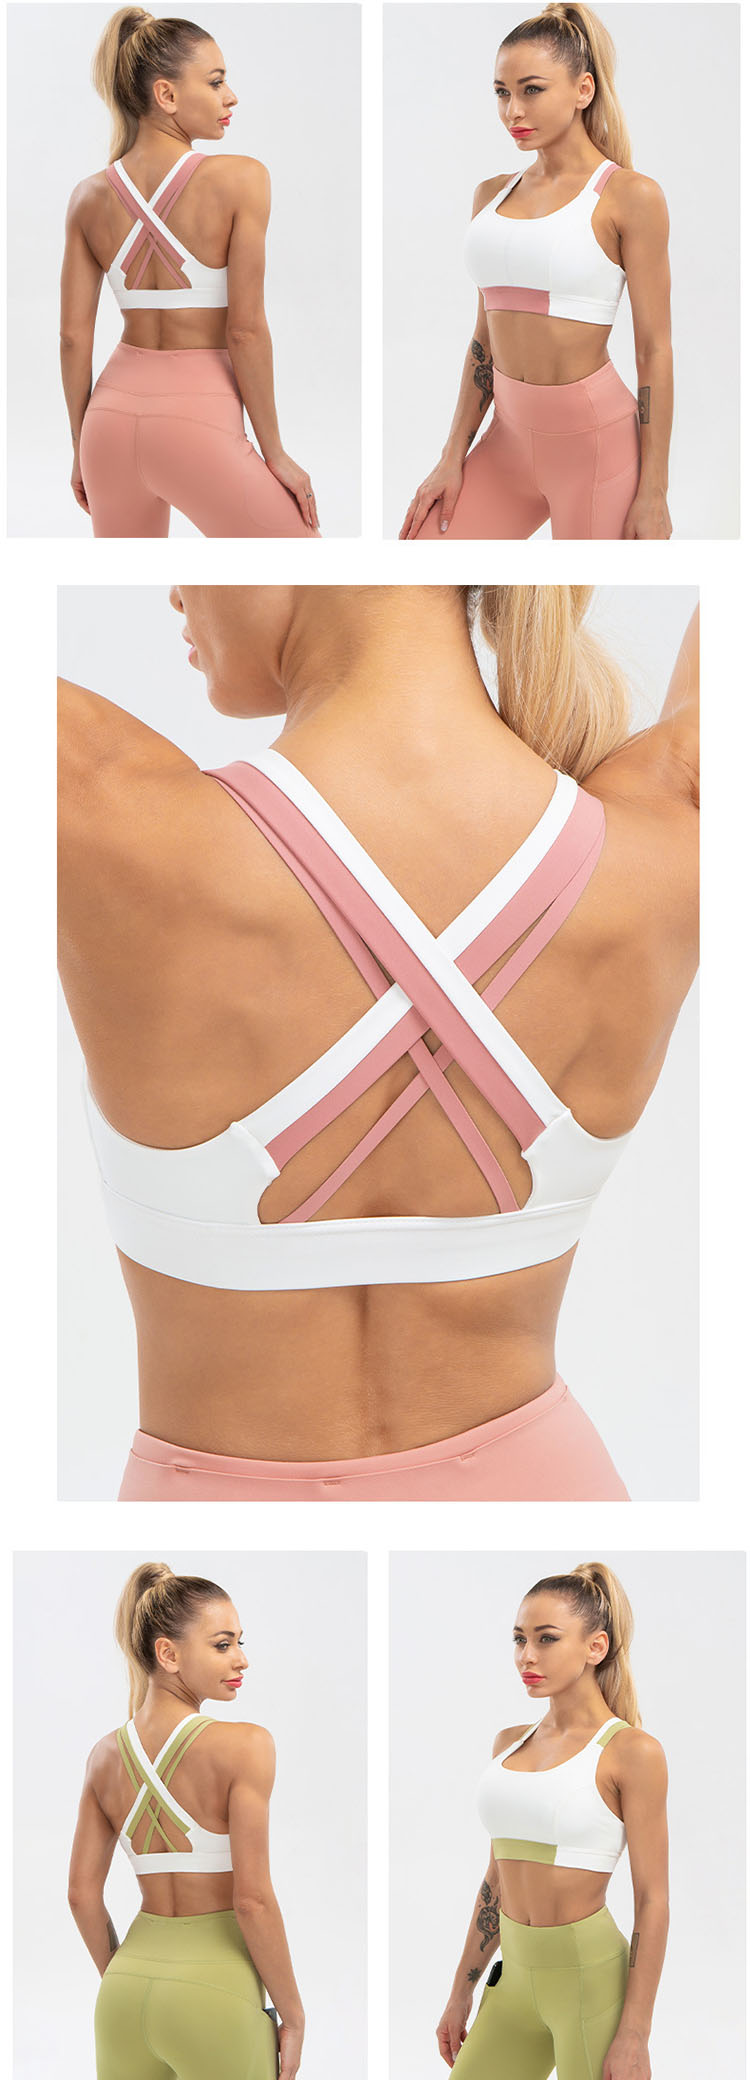 Use contrasting color stitching to achieve the effect of modifying the skin color of the back, which is more fashionable.